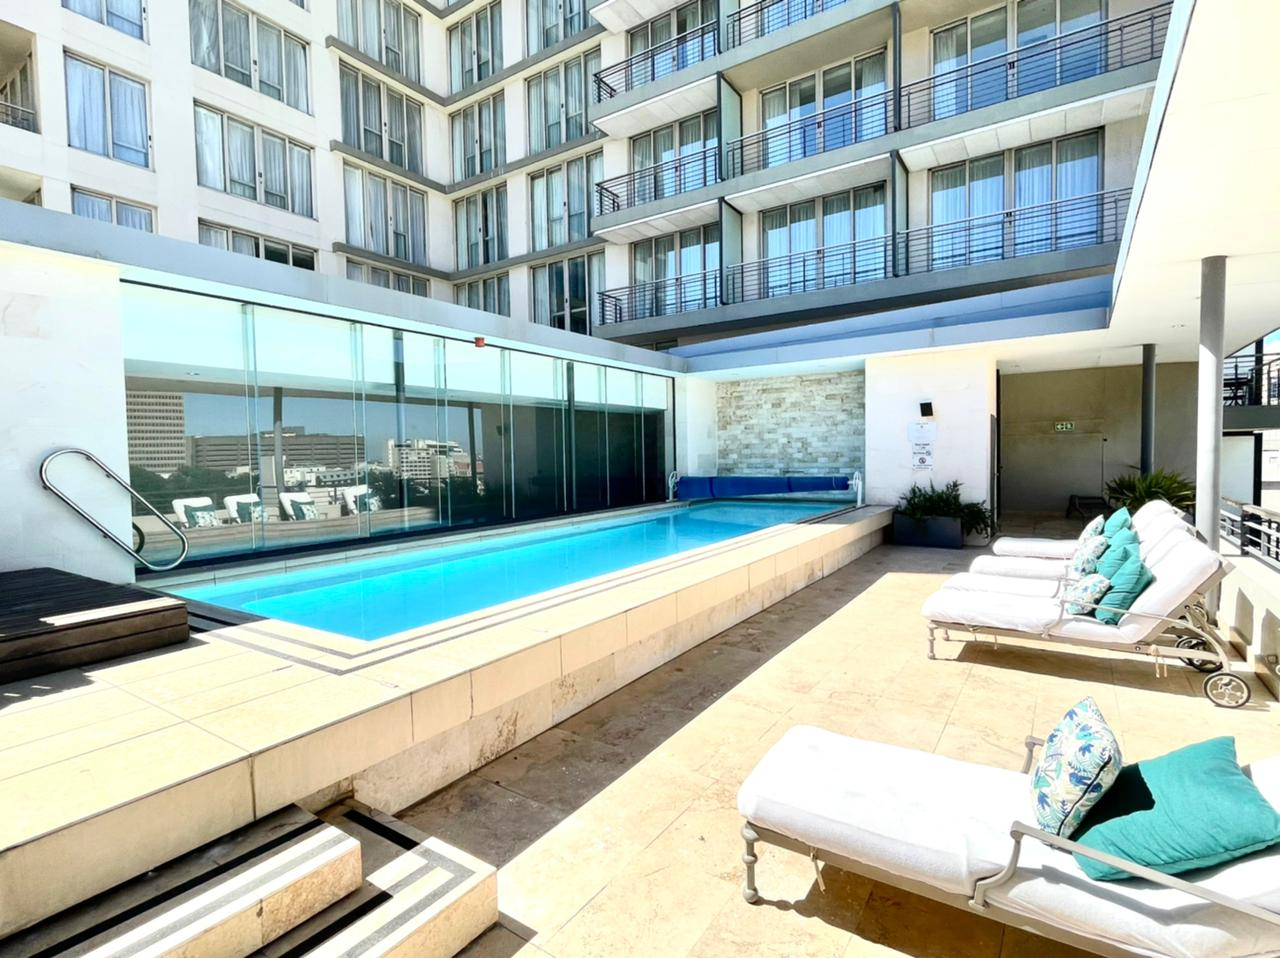 Apartment in City Centre - Pool.jpeg